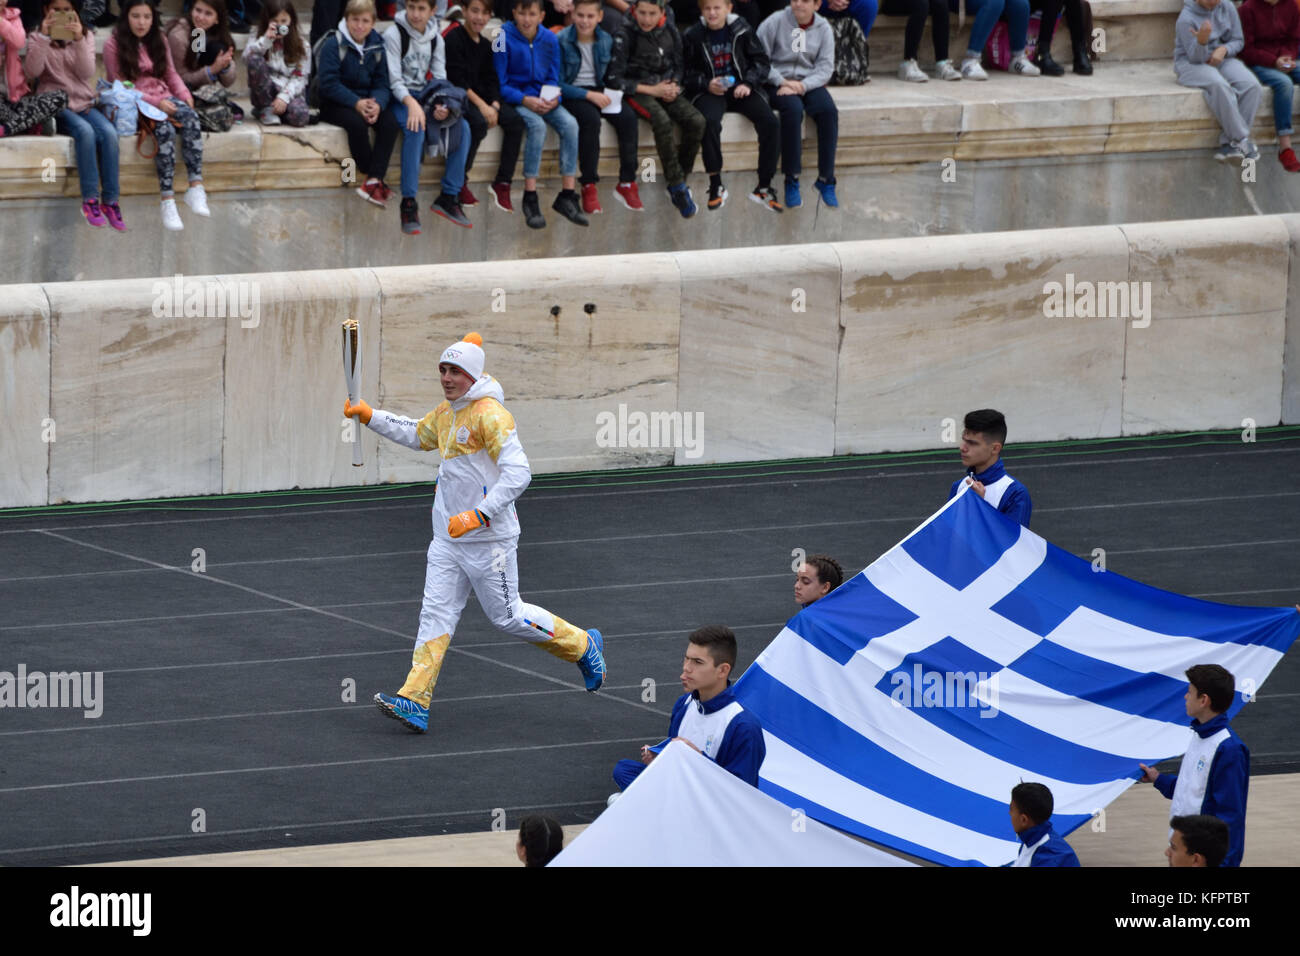 Athens, Greece, 31st October, 2017. The Greek skiing champion Ioannis Proios carries the Olympic Torch during the - Stock Image